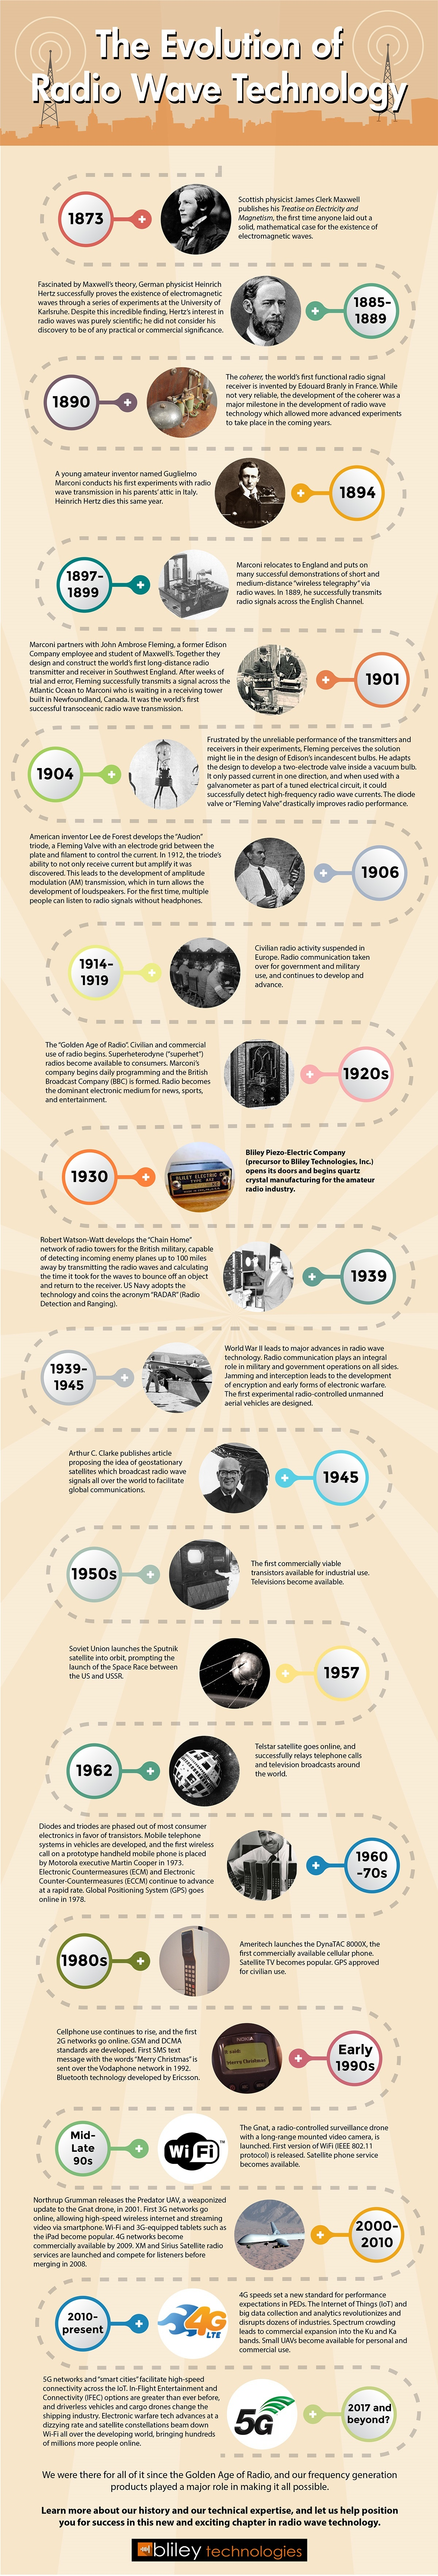 Evolution of Radio Wave Technology infographic.jpg